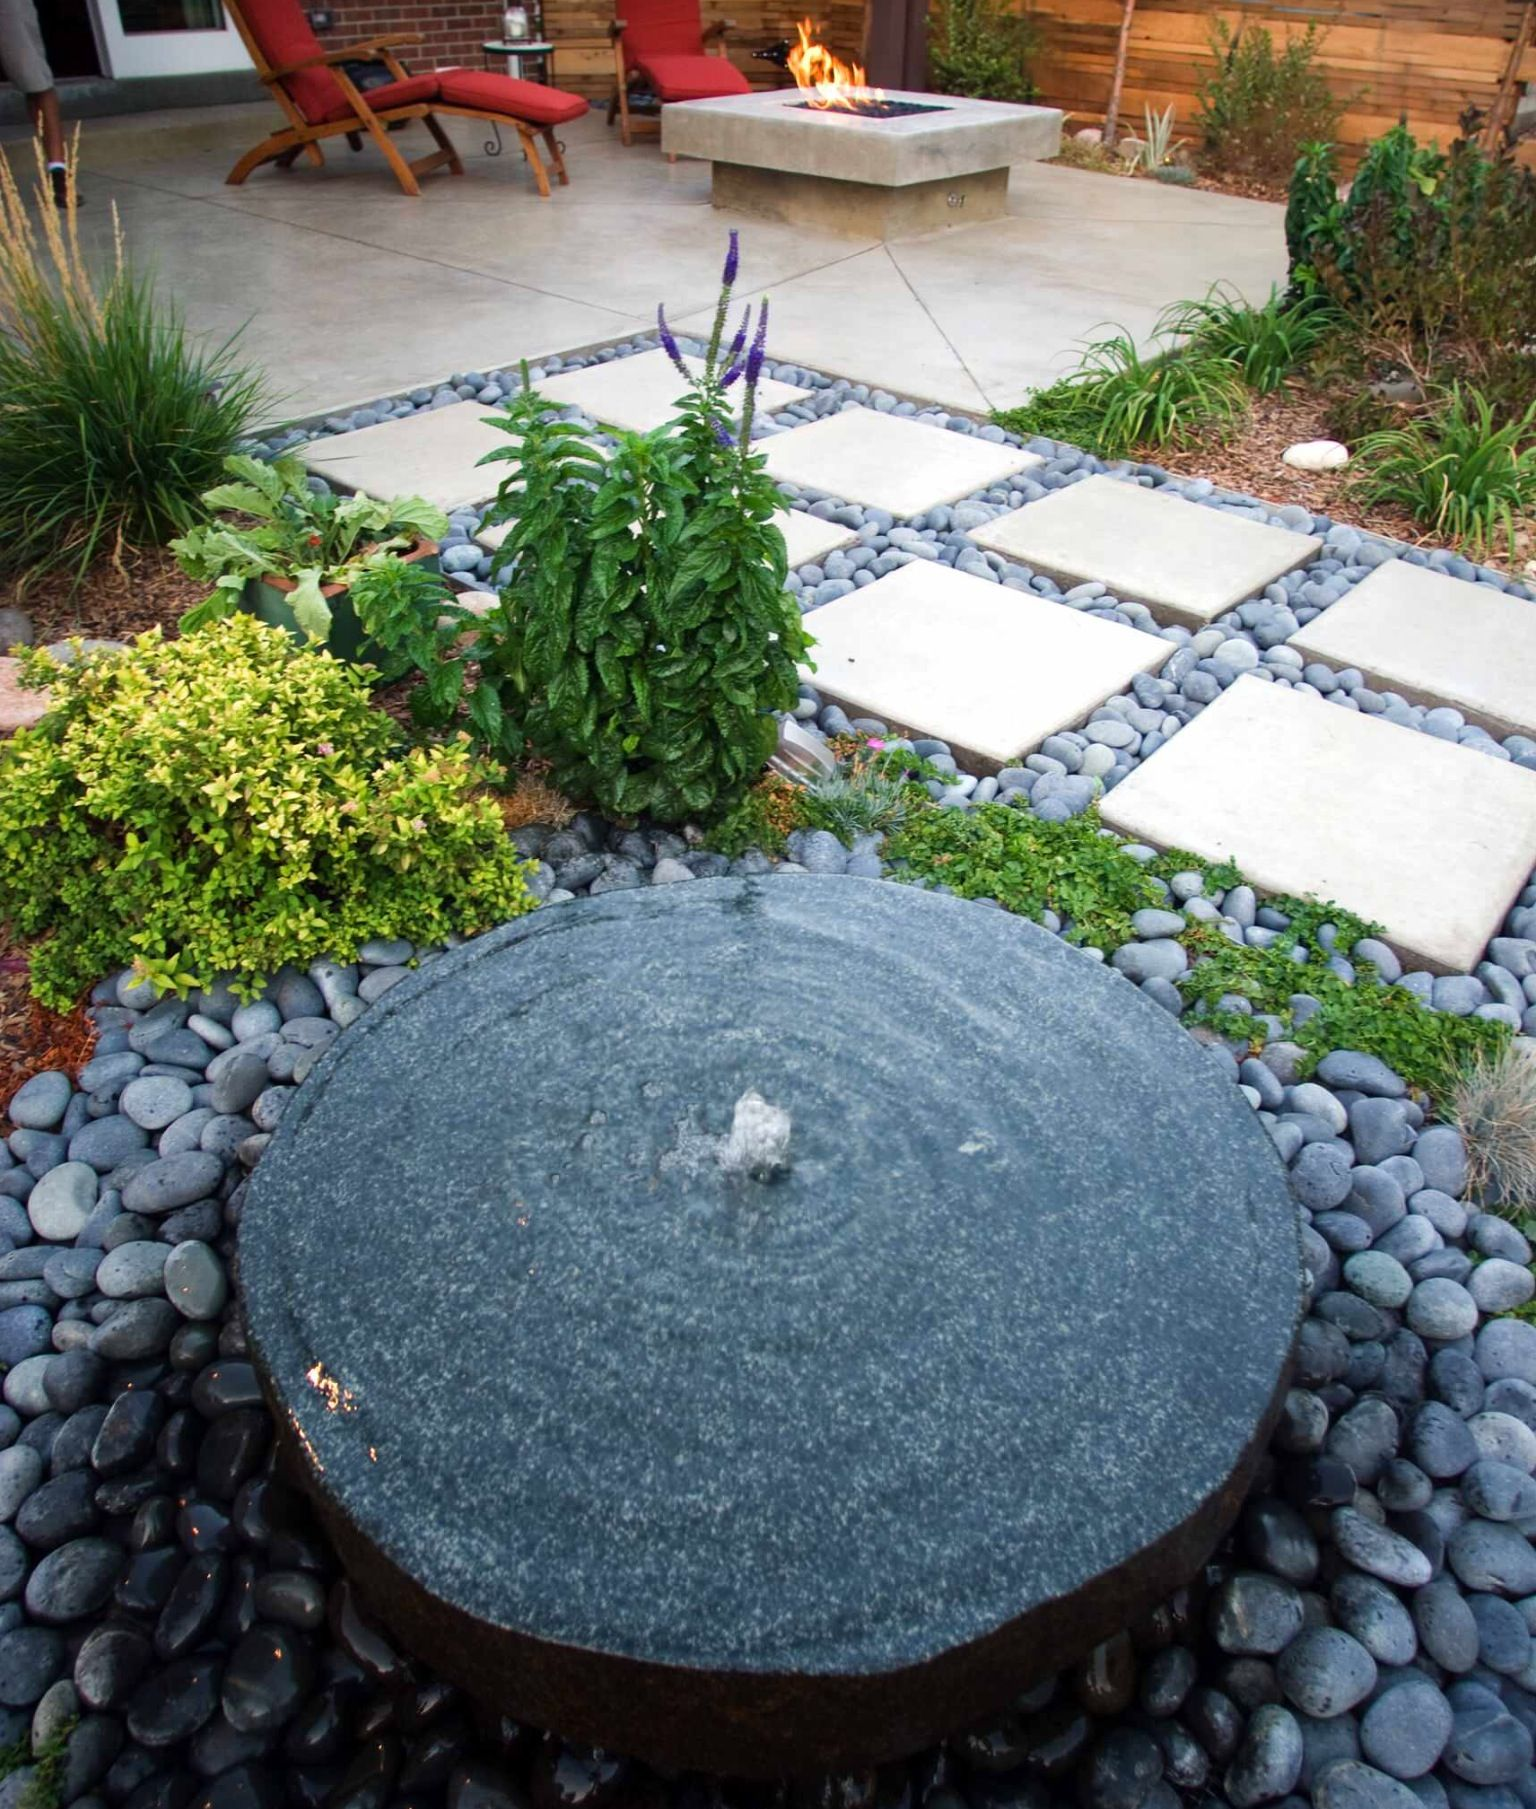 Home Landscape Software Features: The Round Water Feature And The Squares Of Pavers Balance